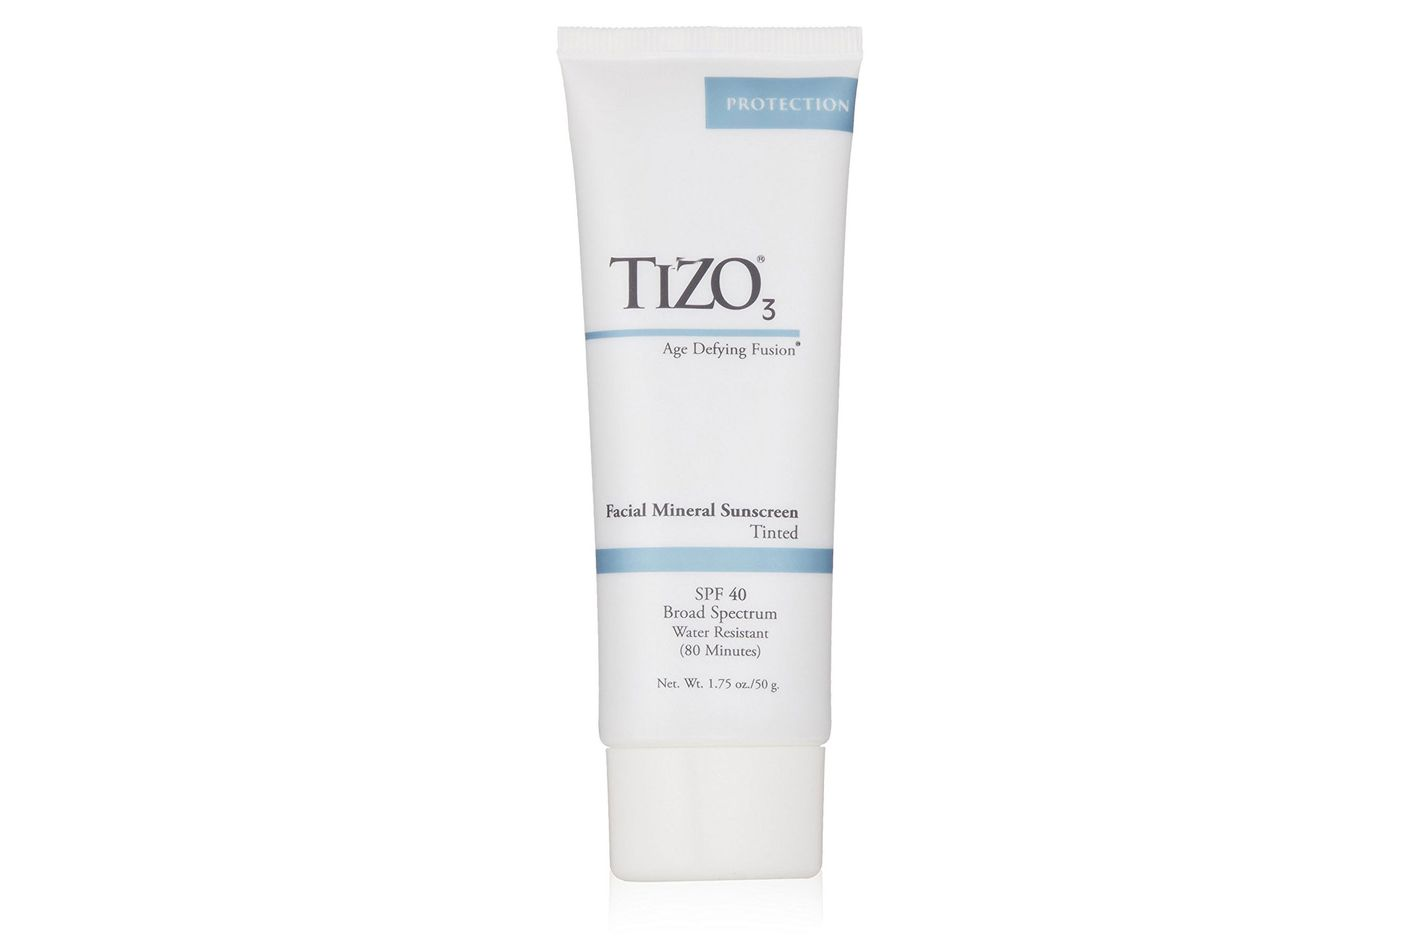 Tizo 3 Tinted Facial Mineral SPF40 Sunscreen